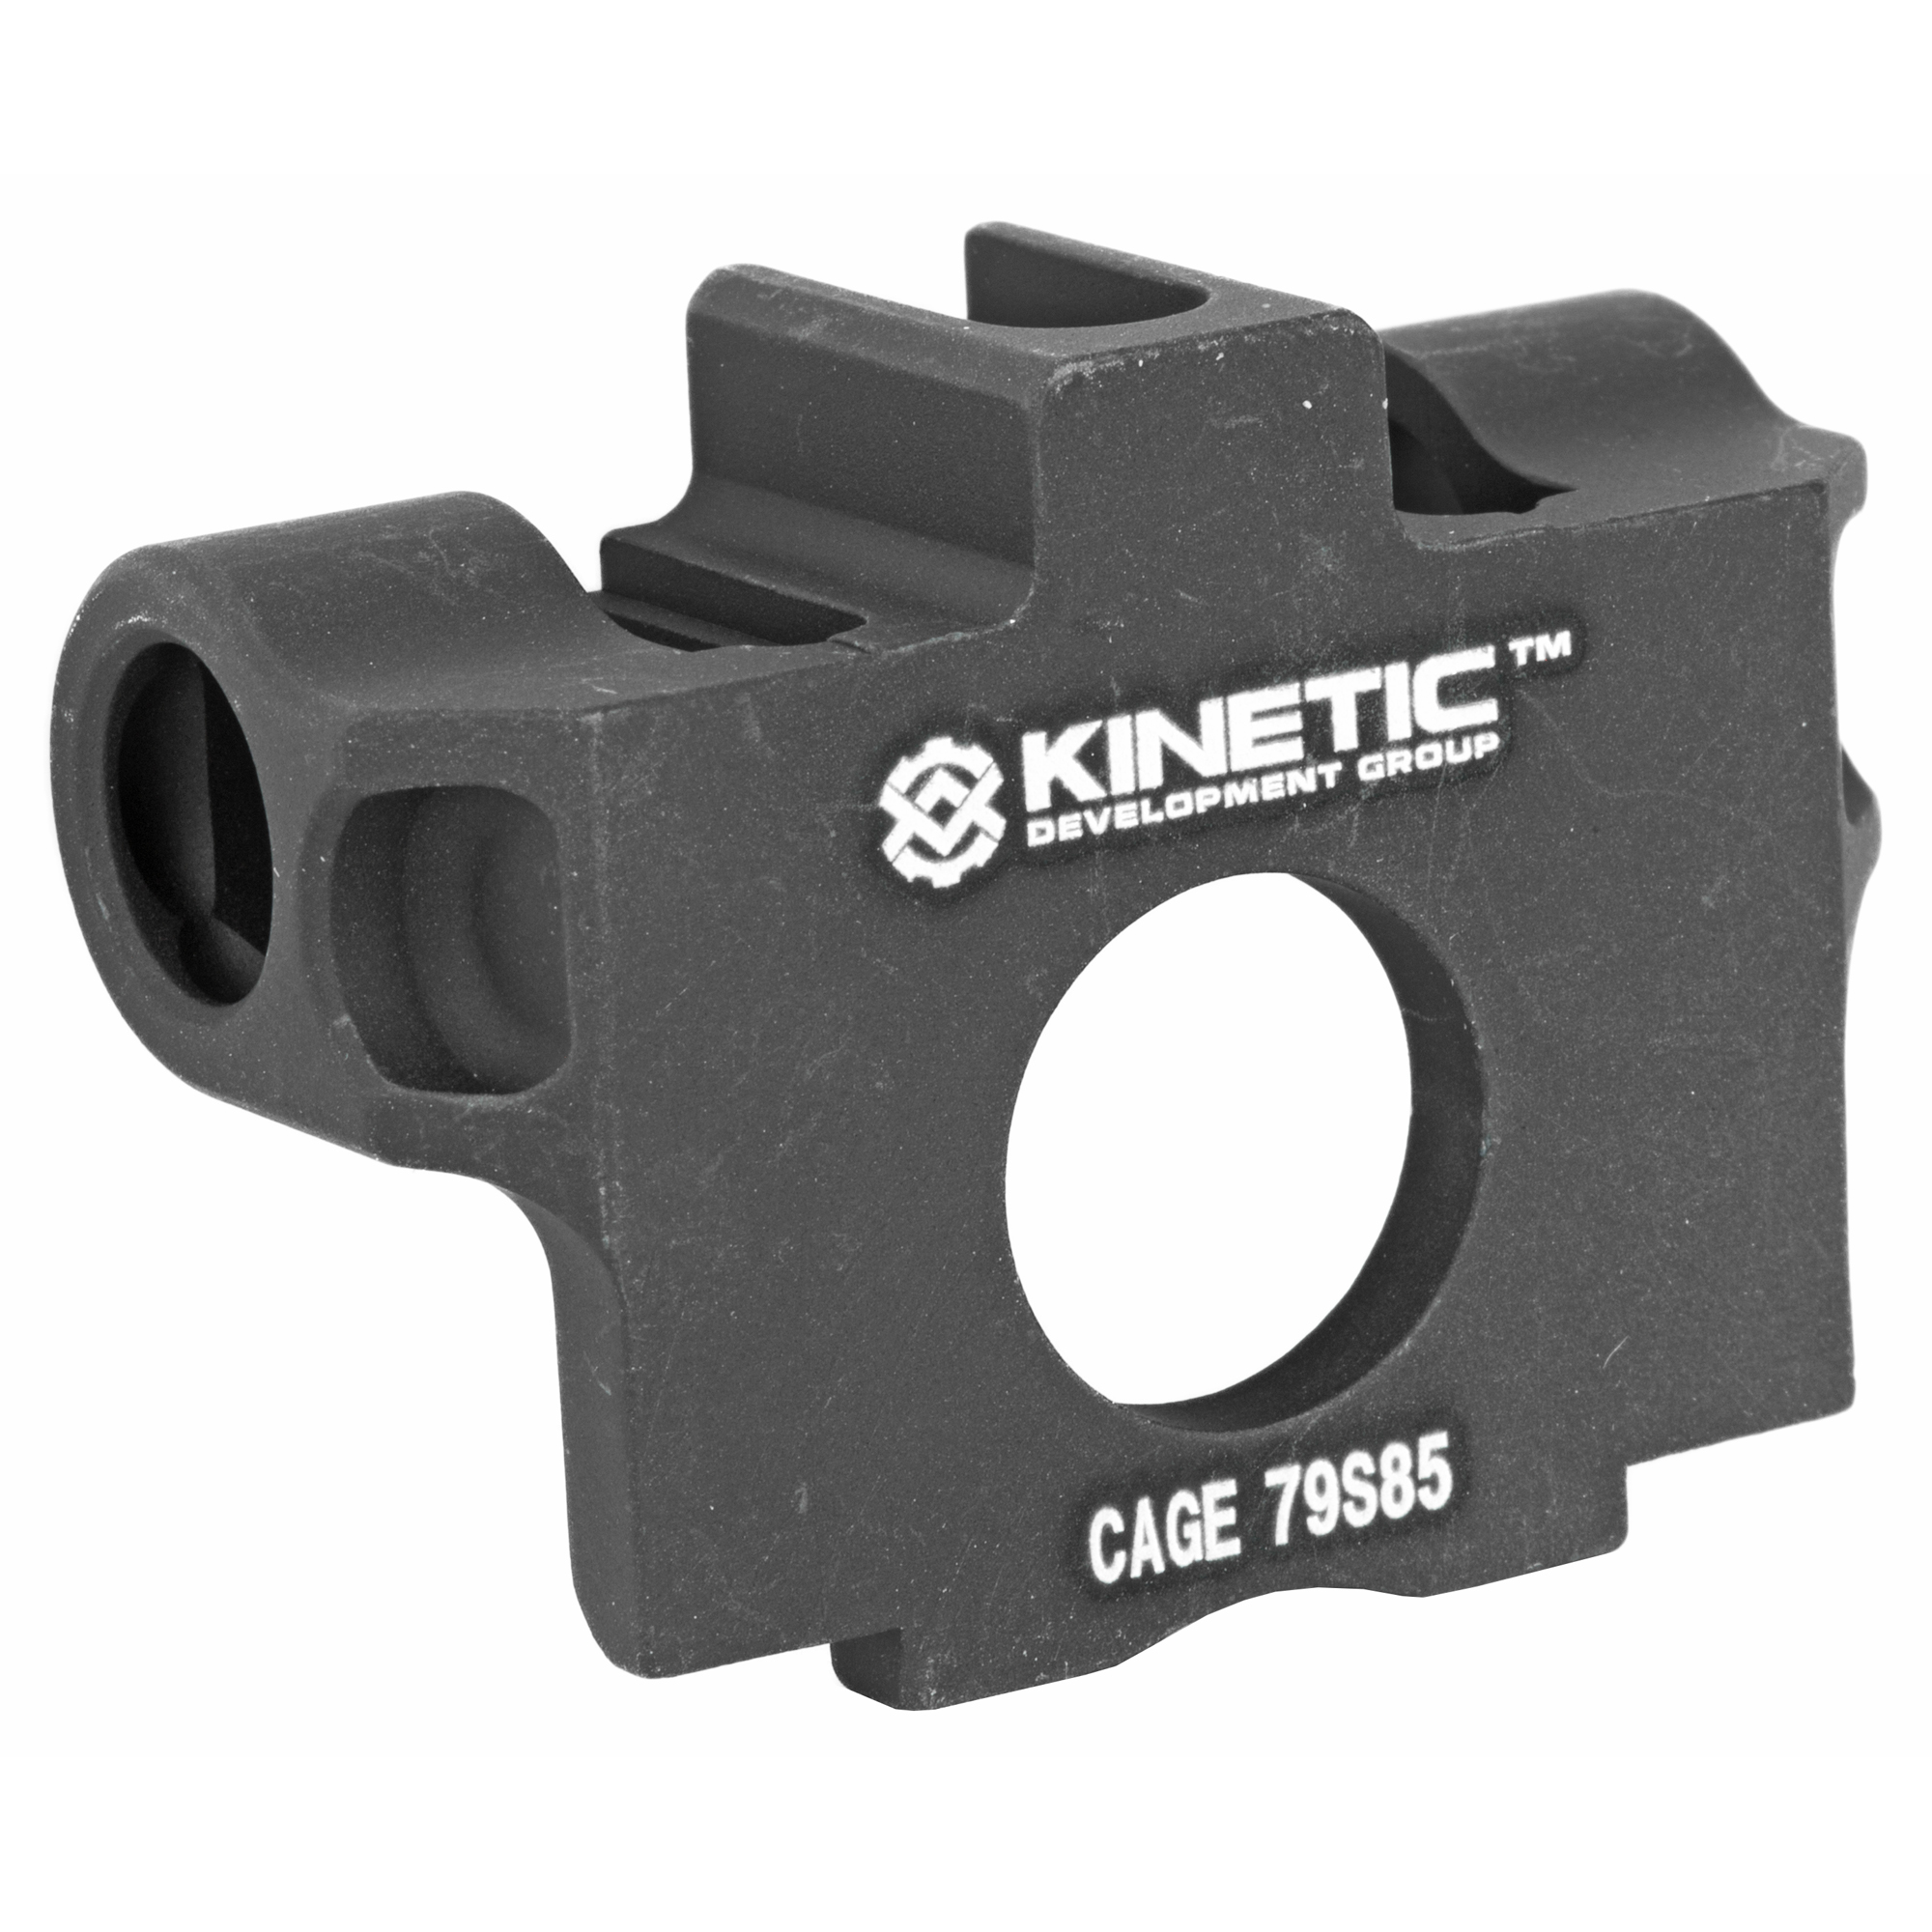 """Most shooters using the SCAR have struggled with different sling mounting solutions. The KDG designed Front Ambidextrous QD point (FAQP) mount is a deceivingly simple superiorly designed solution for any SCAR owner. The Front Ambi QD Point replaces the existing factory """"HK"""" point piece with a QD mounting point on either side of the rifle. KRG specifically wanted a more rugged"""" streamlined mount that is failure proof and looks more like a factory part then a bulbous aftermarket accessory. You can be confident that the FAQP mount will outperform our competition. You will look at the lines and style of your rifle so well you'll wonder why the SCAR wasn't designed with it!"""